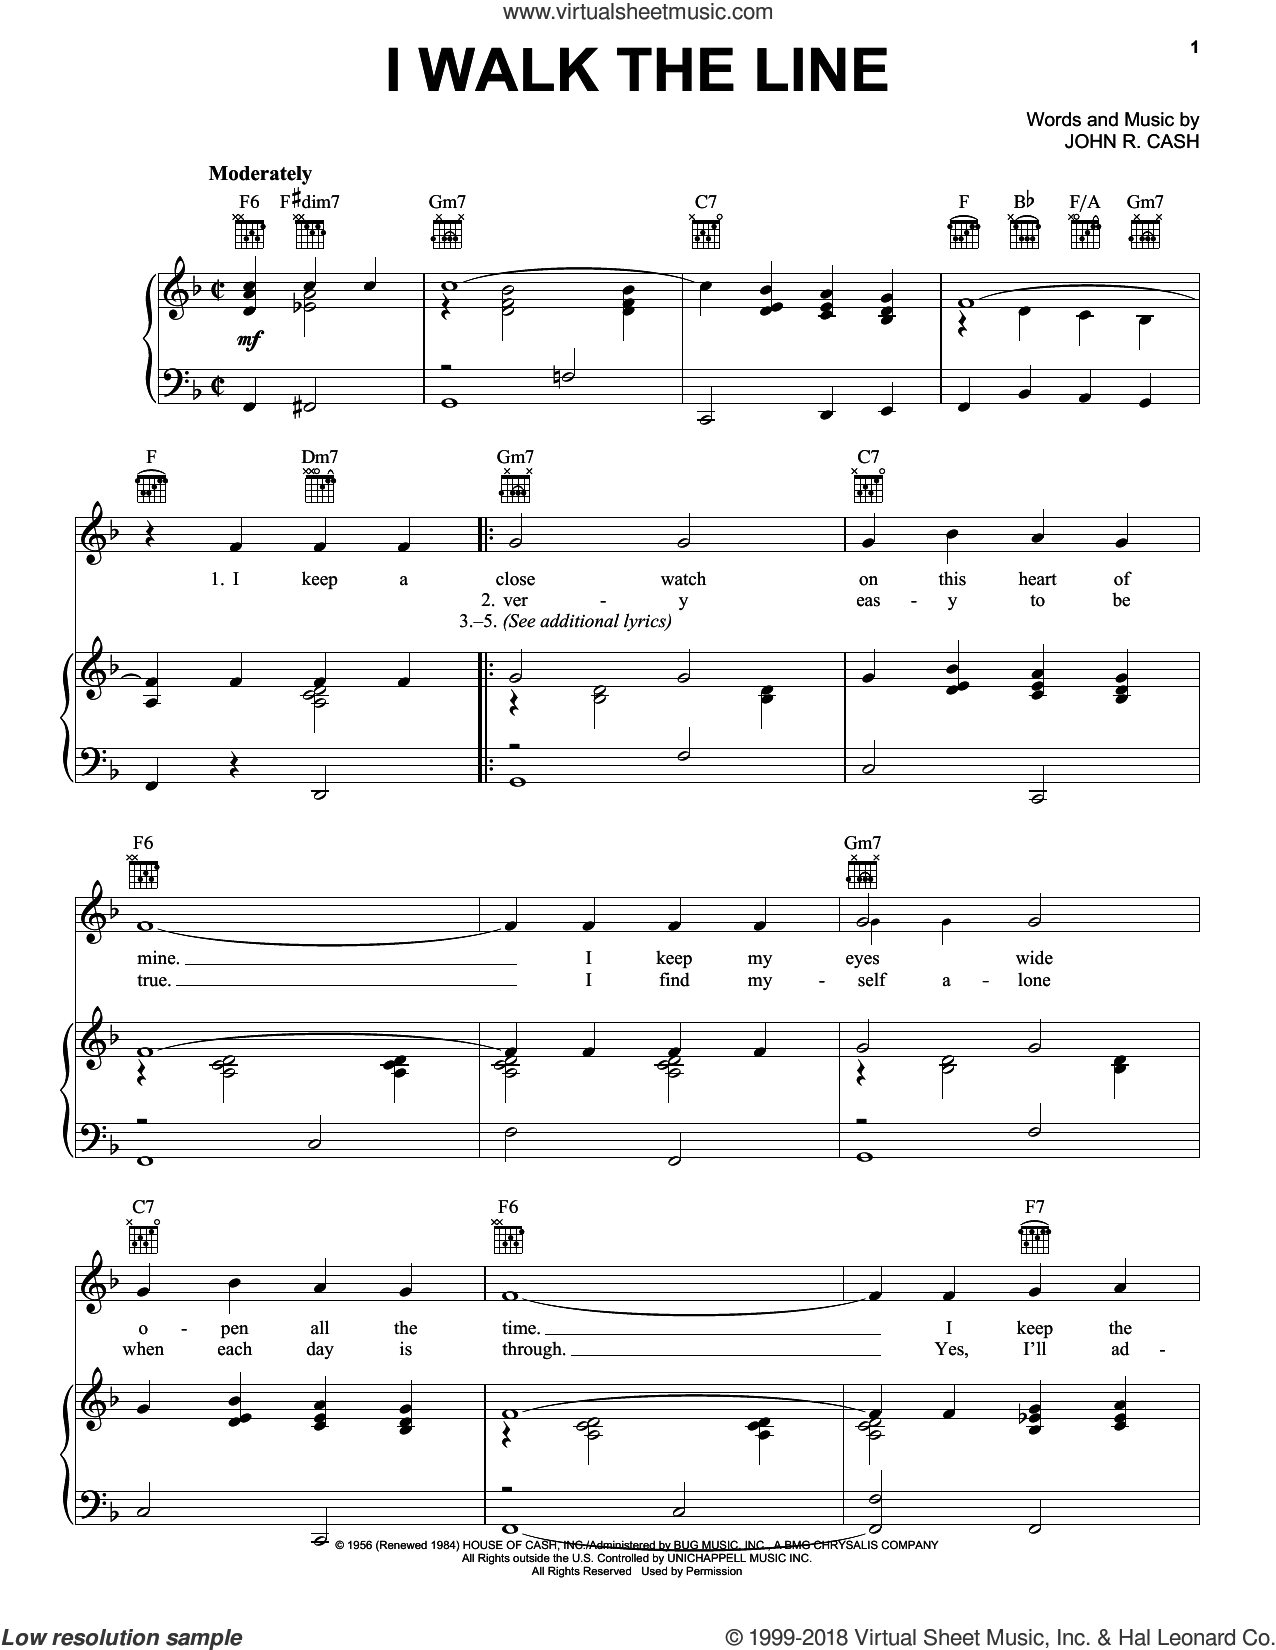 I Walk The Line sheet music for voice, piano or guitar by Johnny Cash and Walk The Line (Movie), intermediate skill level